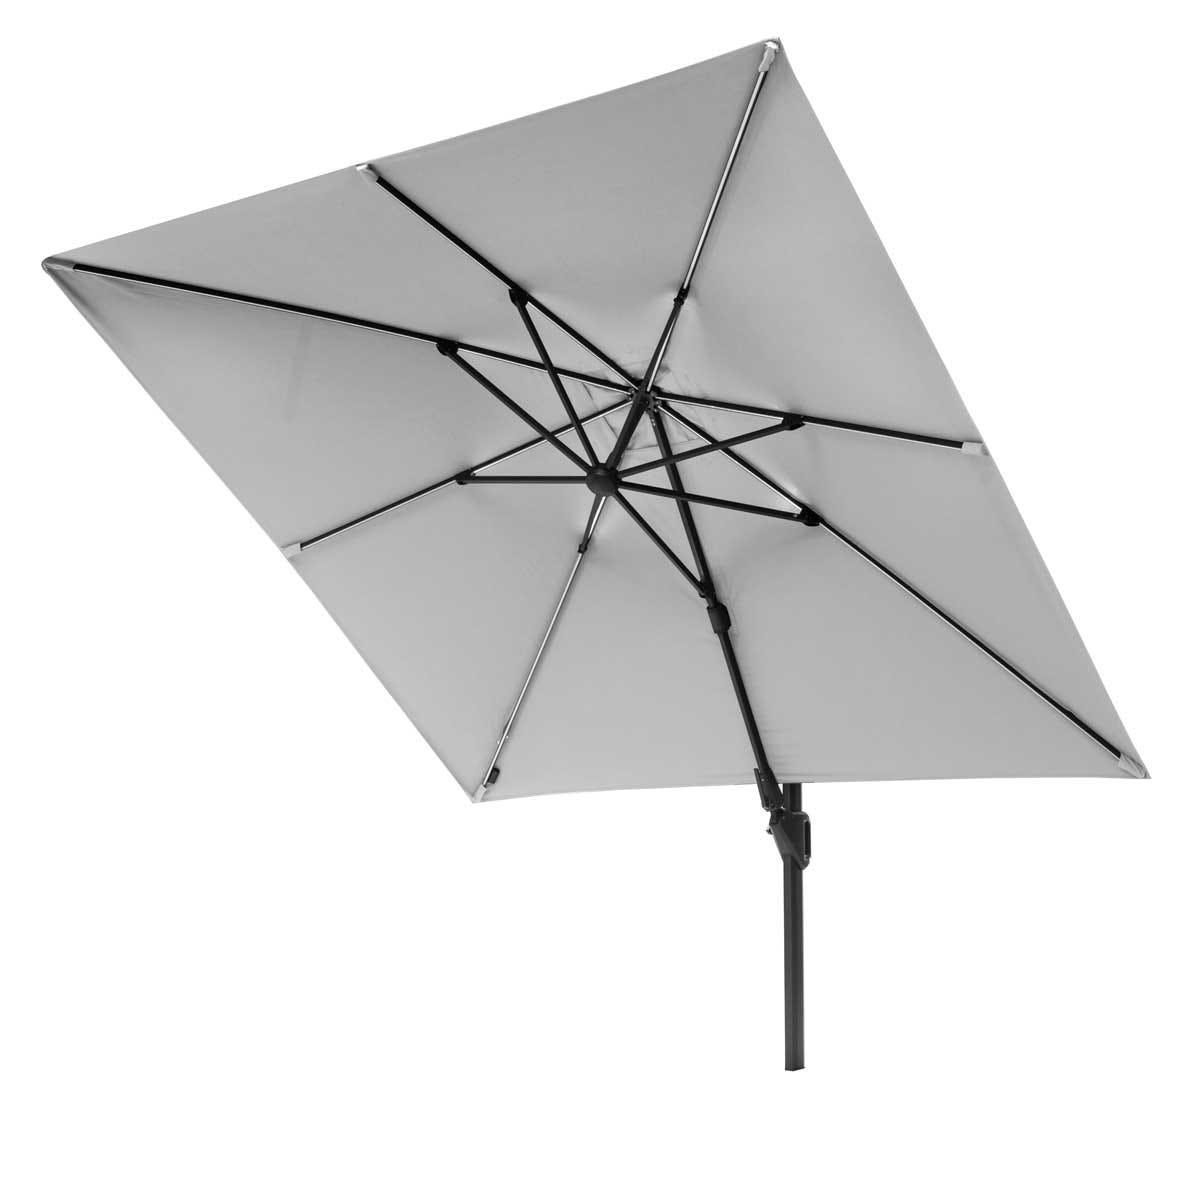 Platinum Challenger T2 Glow 3m Square Parasol (base not included) - Light Grey